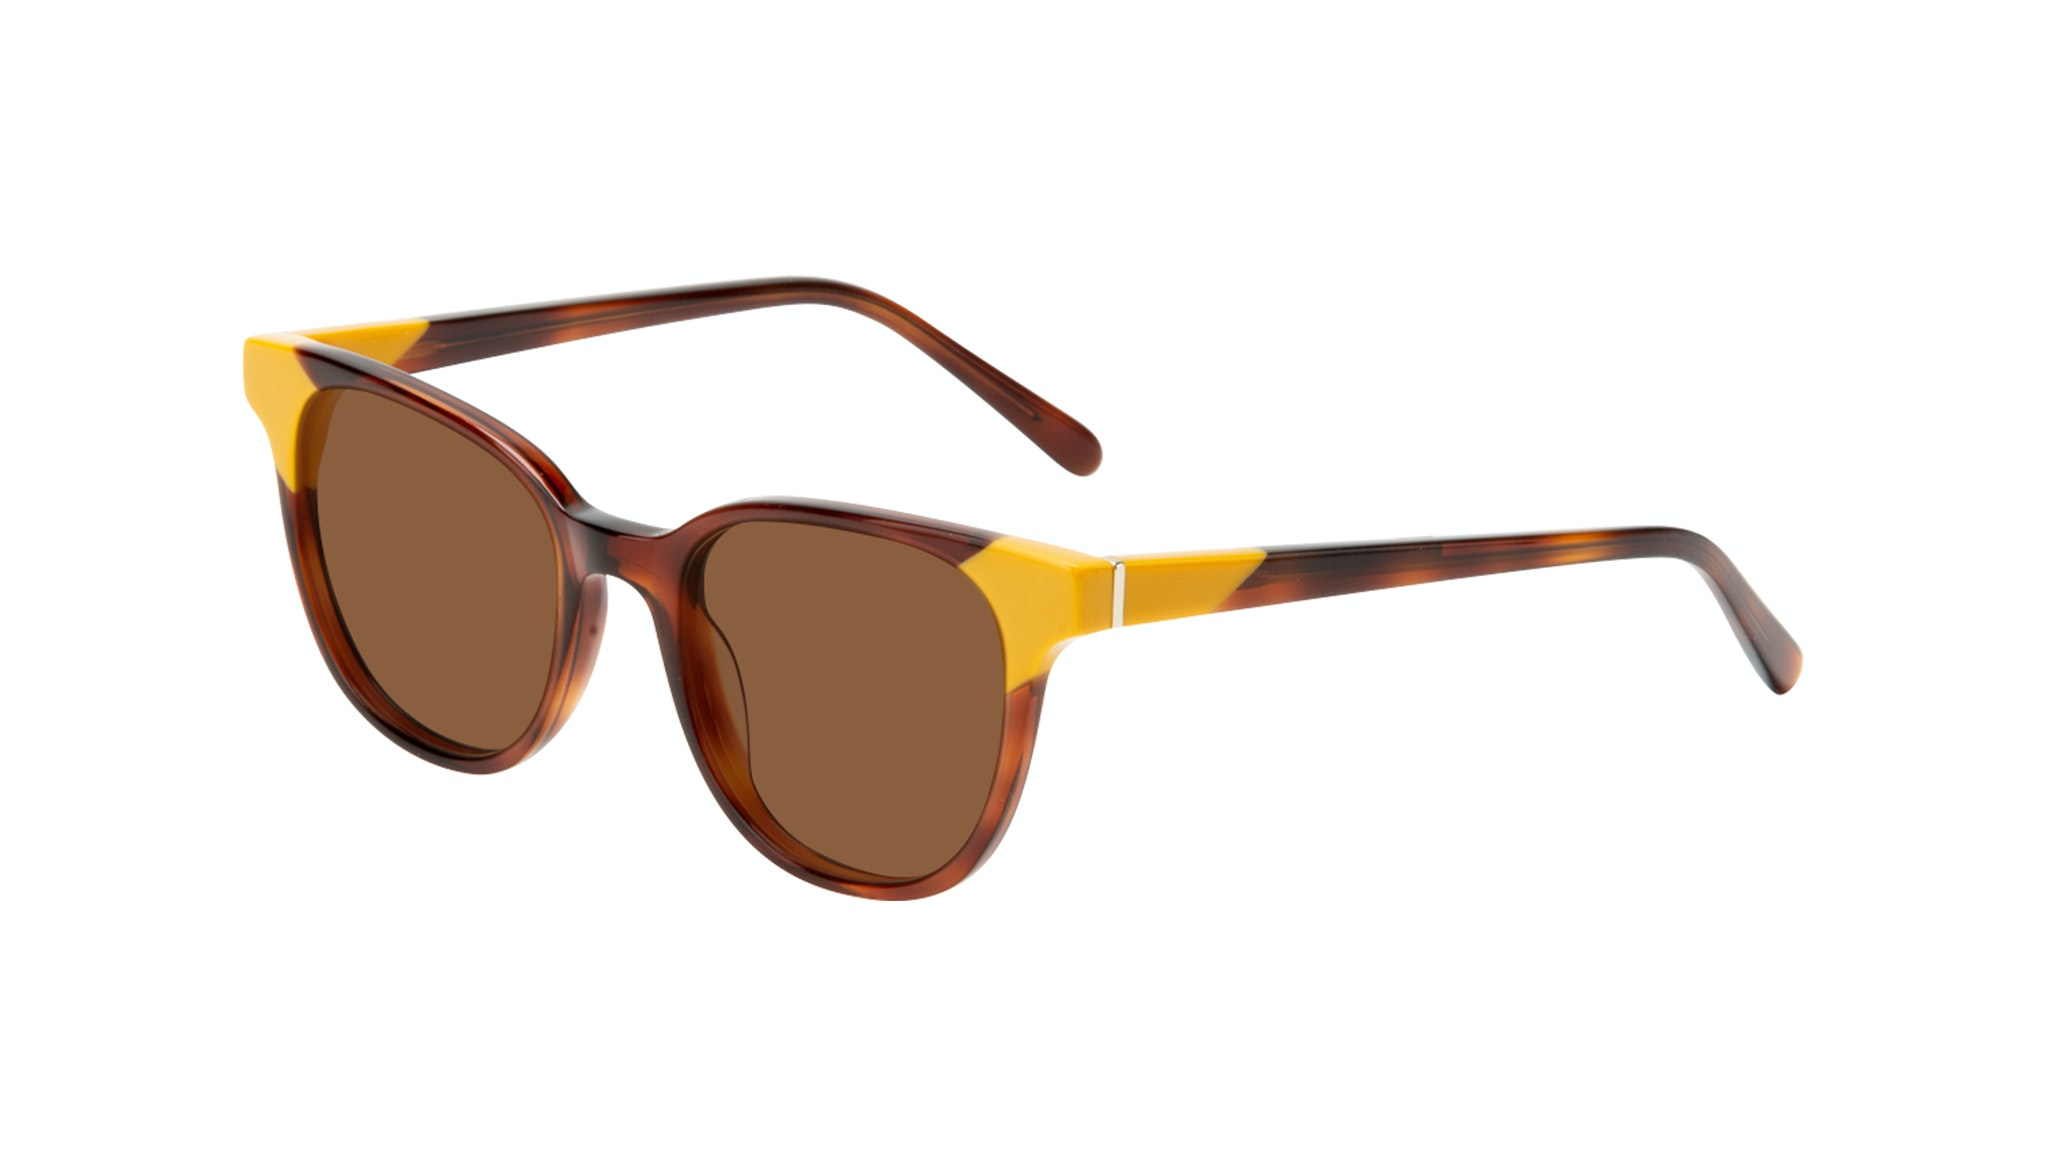 Affordable Fashion Glasses Square Sunglasses Women Lively Yellow Pop Tilt